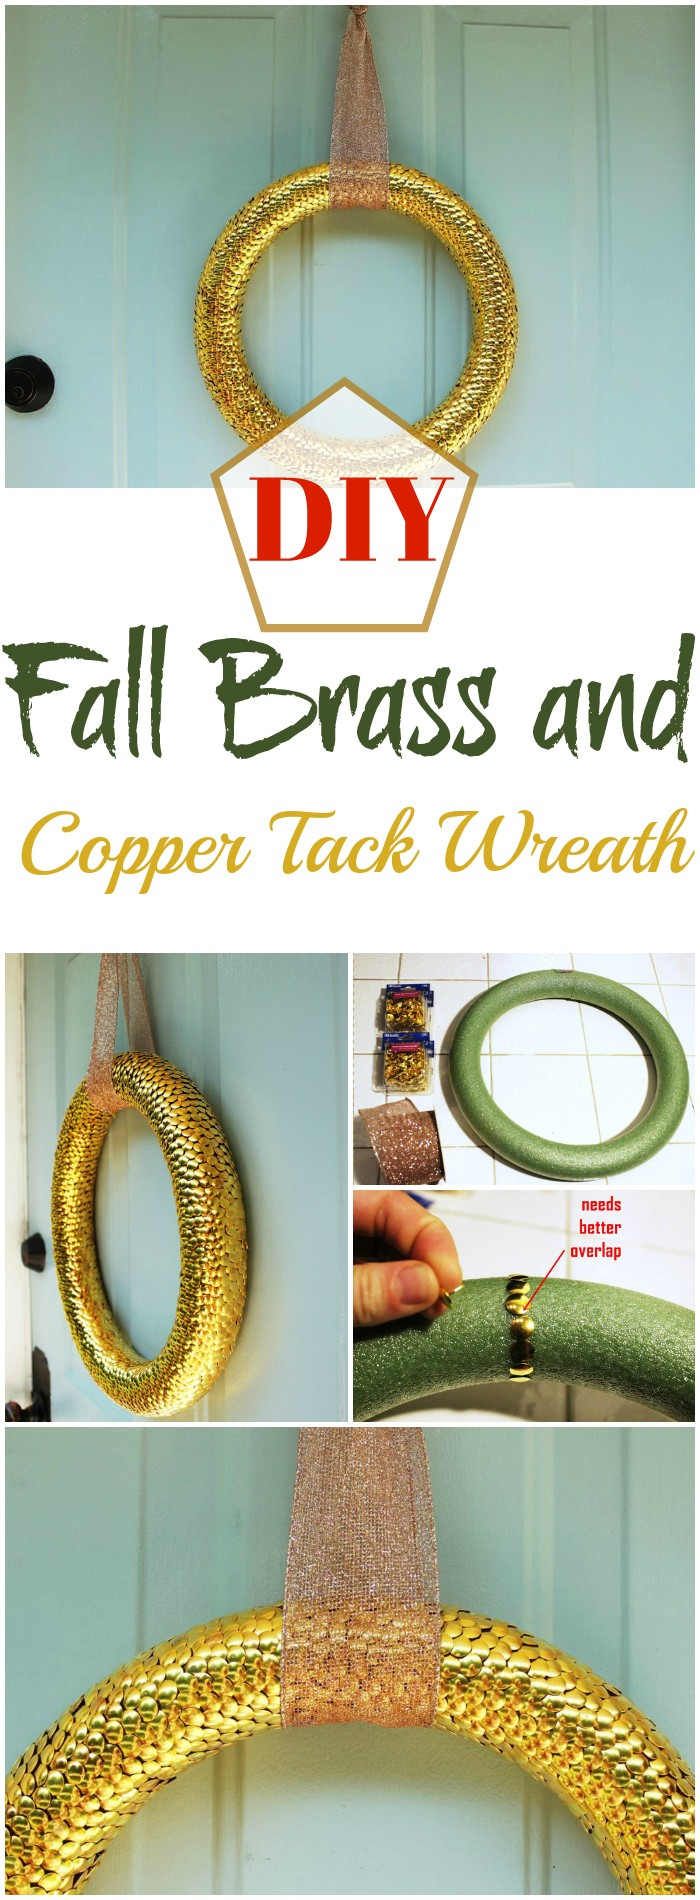 DIY Fall Brass and Copper Tack Wreath